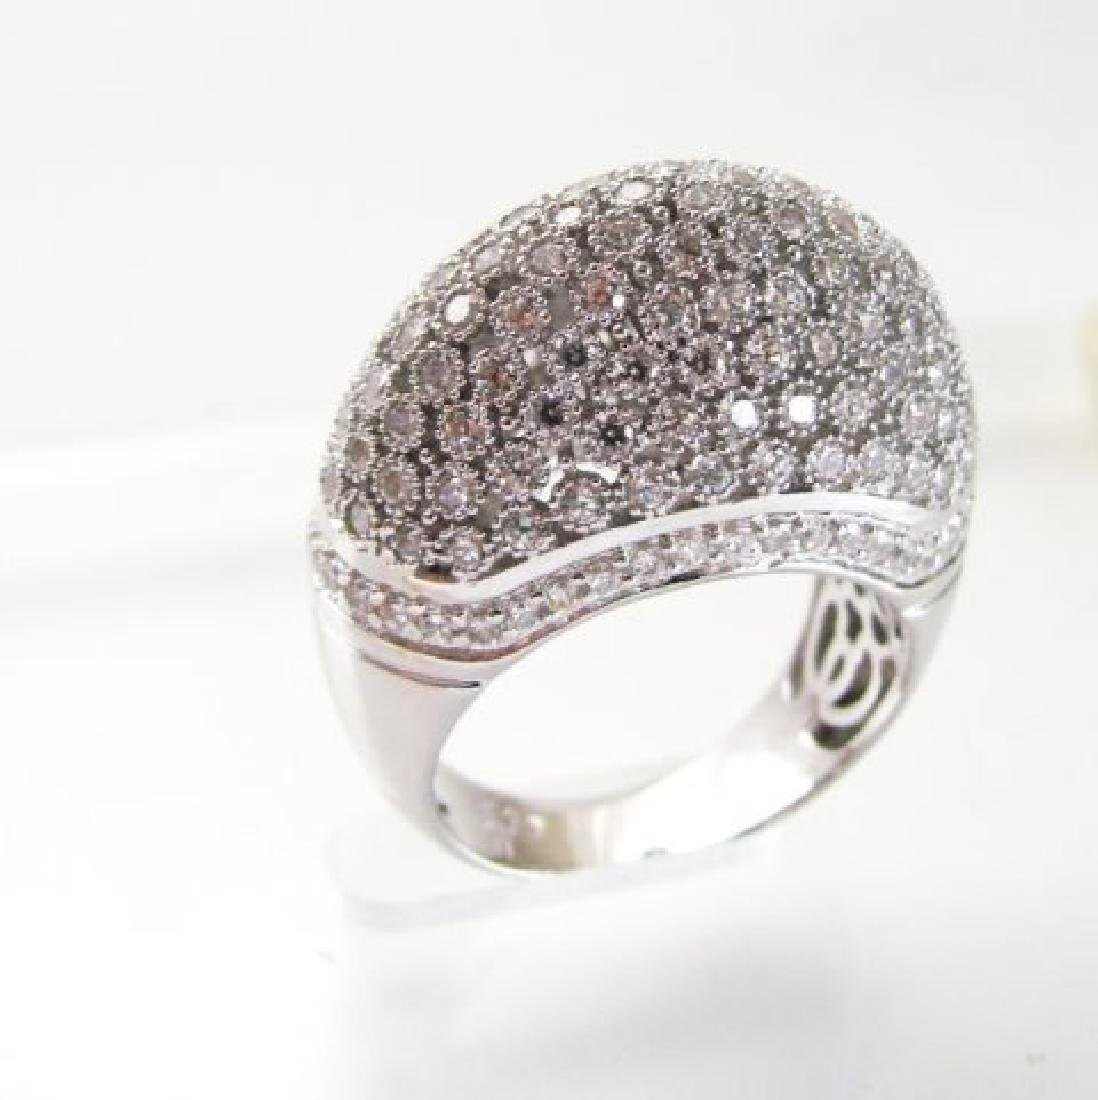 Antique Ring Creation Diamond 2.20Ct 18k W/g Over - 3